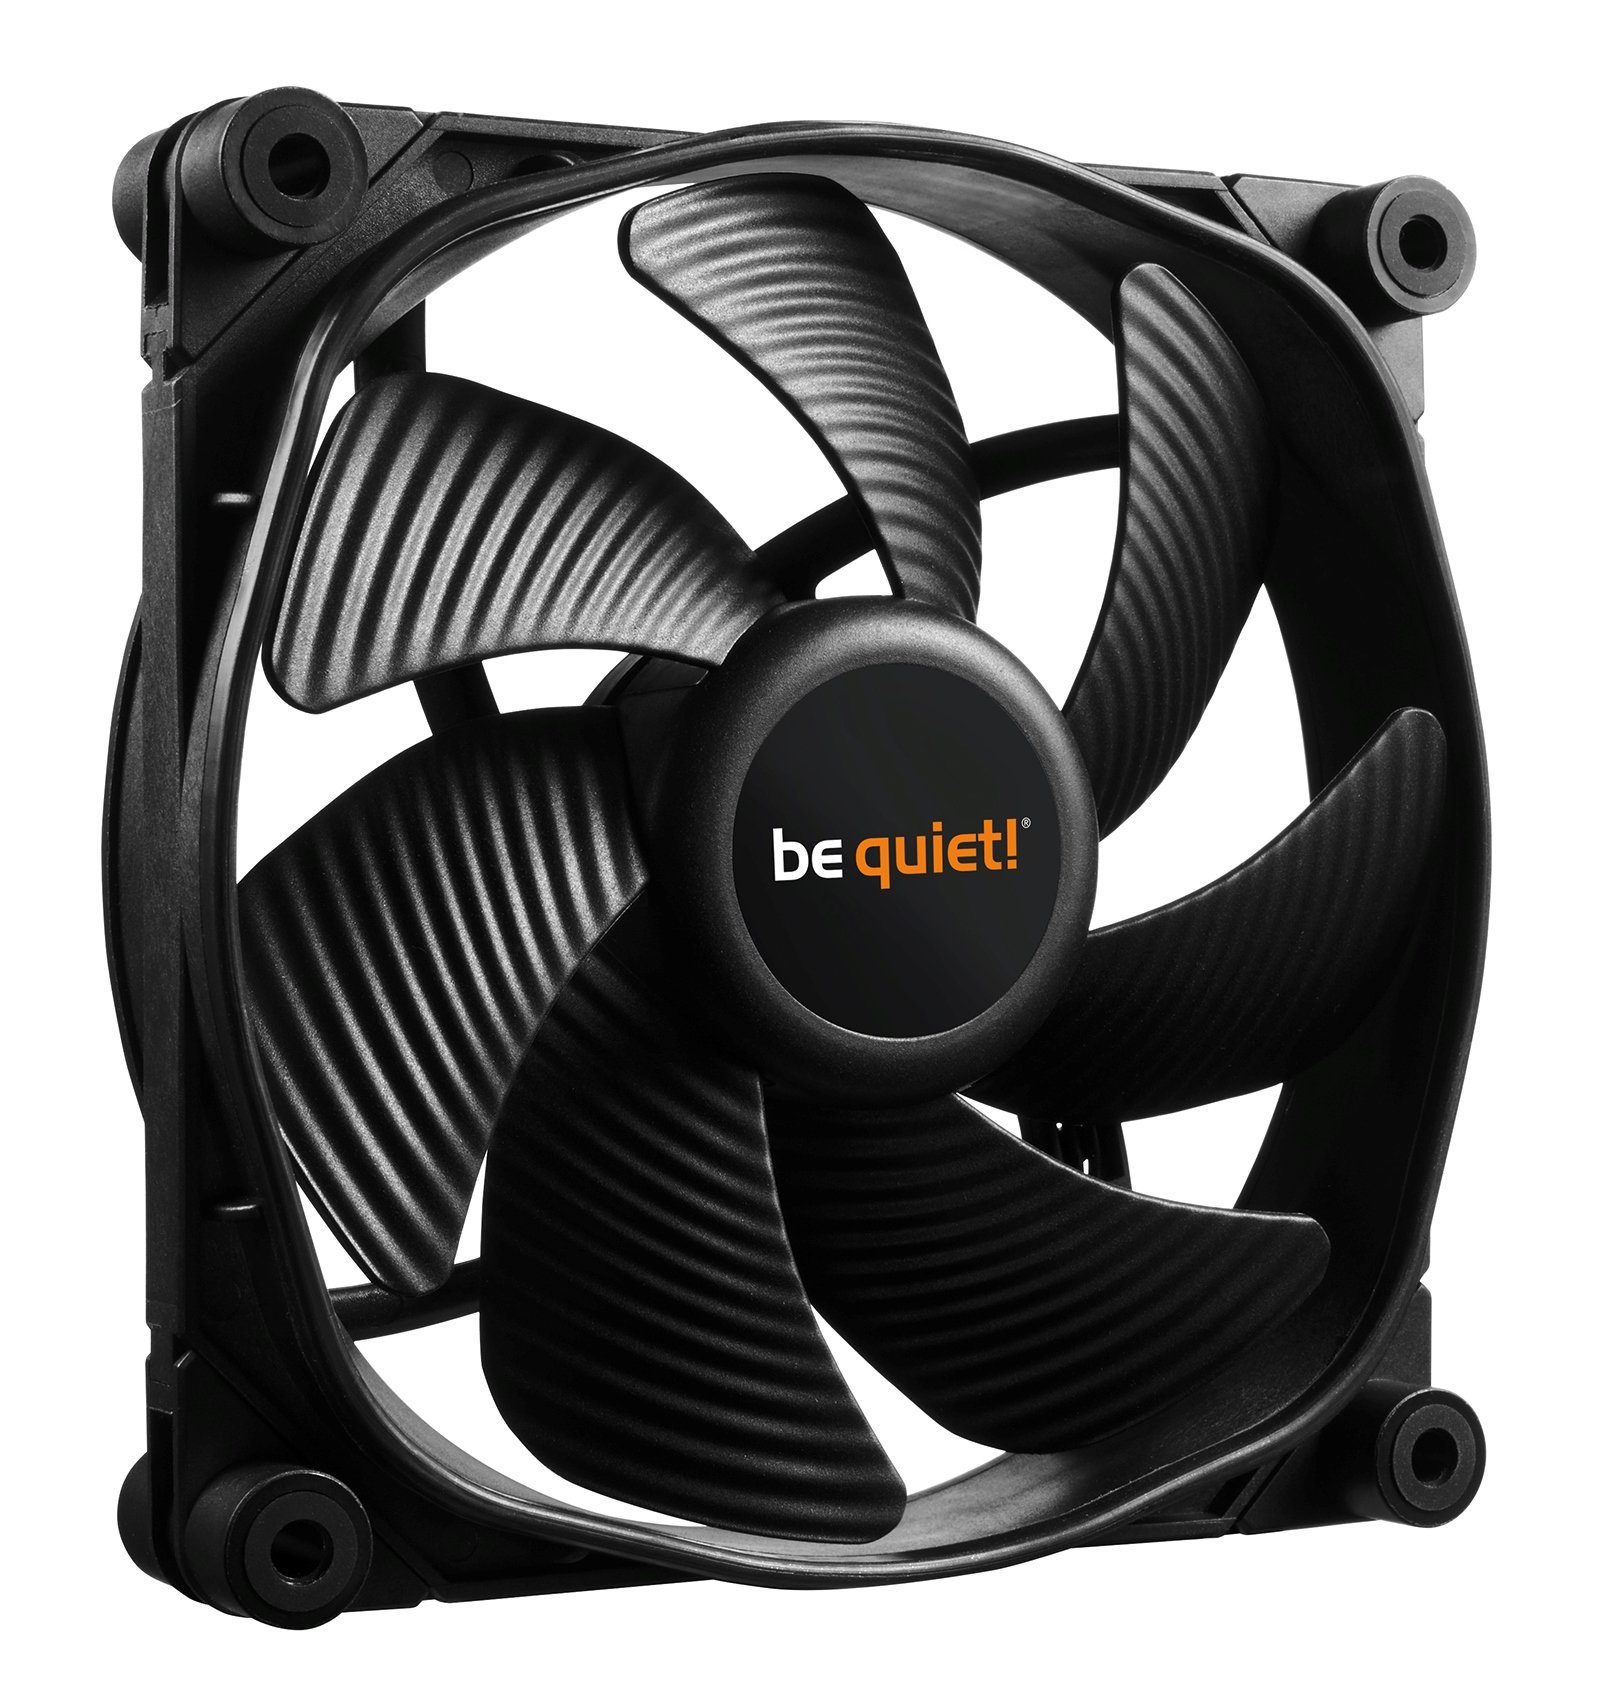 Fan Cooler be quiet! Silent Wings 3 120mm PWM, BL066, Fan